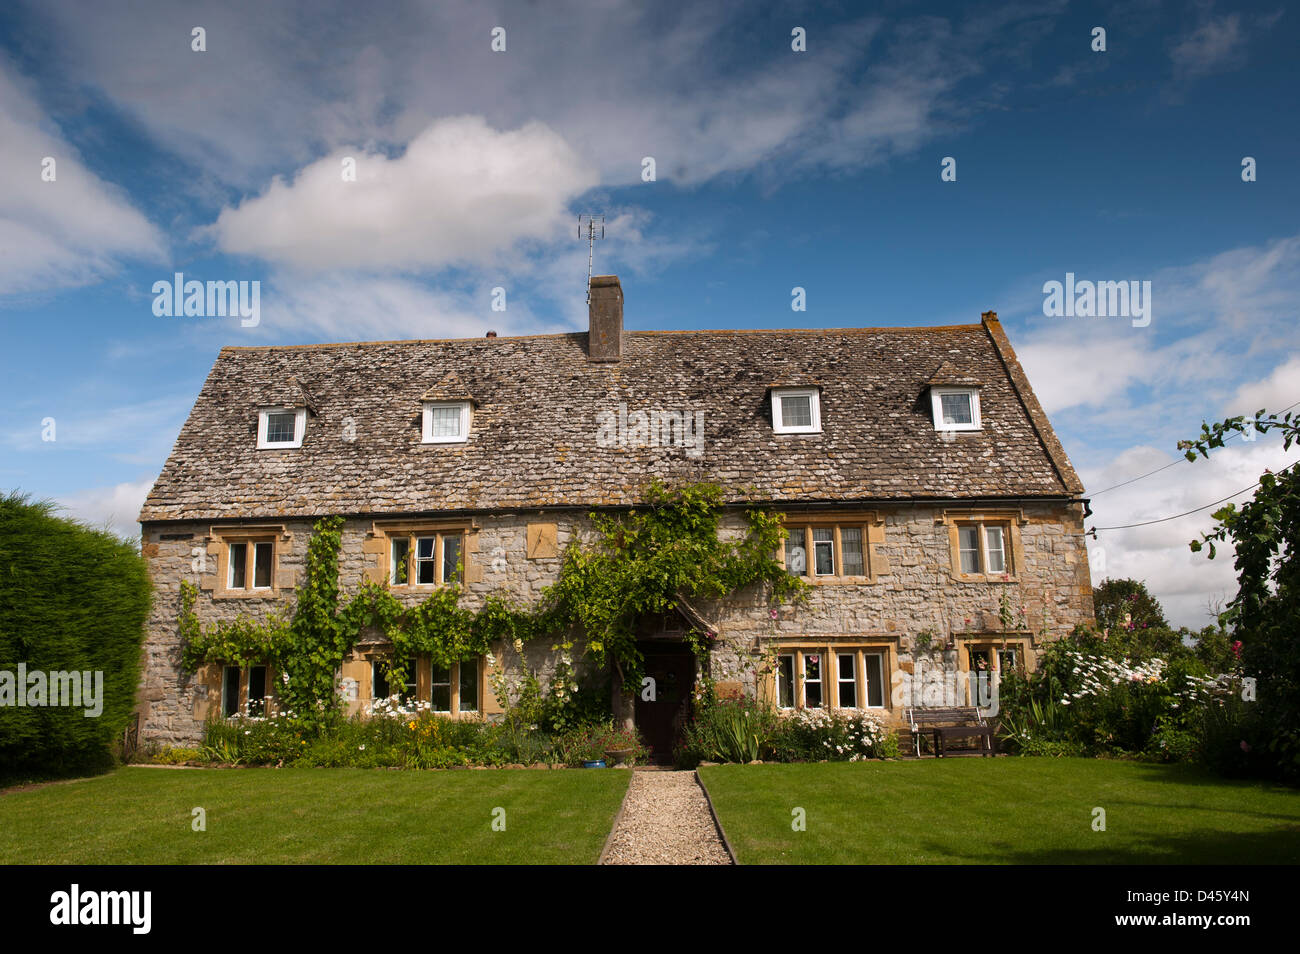 Traditional country cottage in the Cotswolds, UK. - Stock Image